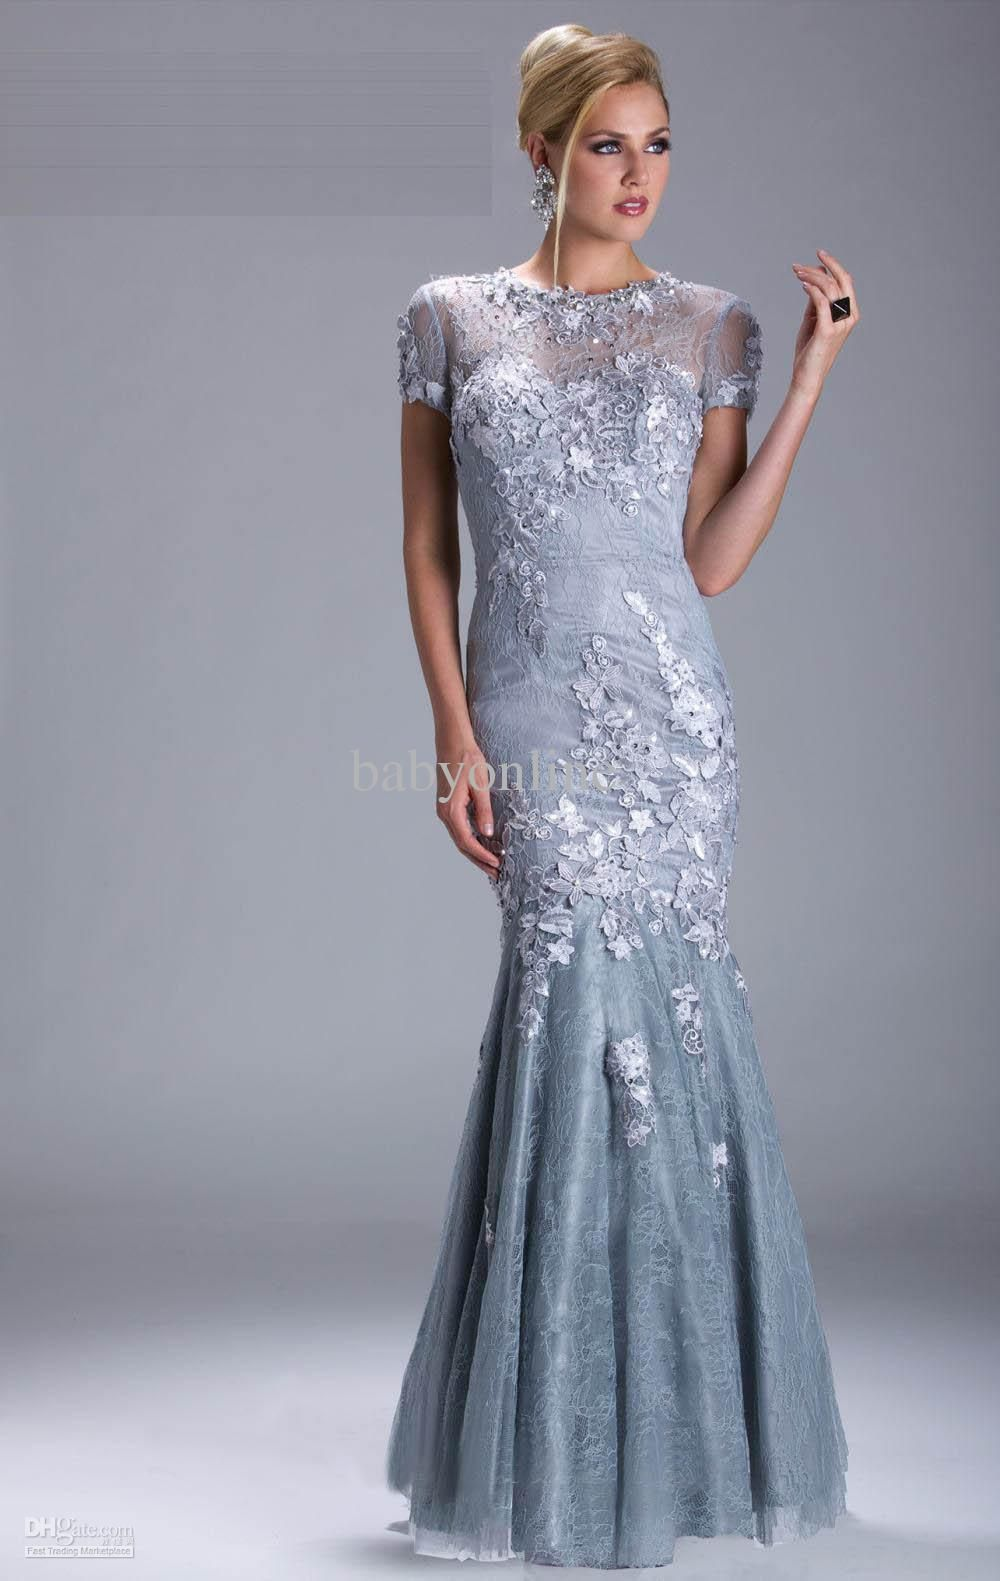 7136bcd89fc32 Sexy Custom Made Mermaid Prom Dresses Fancy New Short Cap Sleeves ...